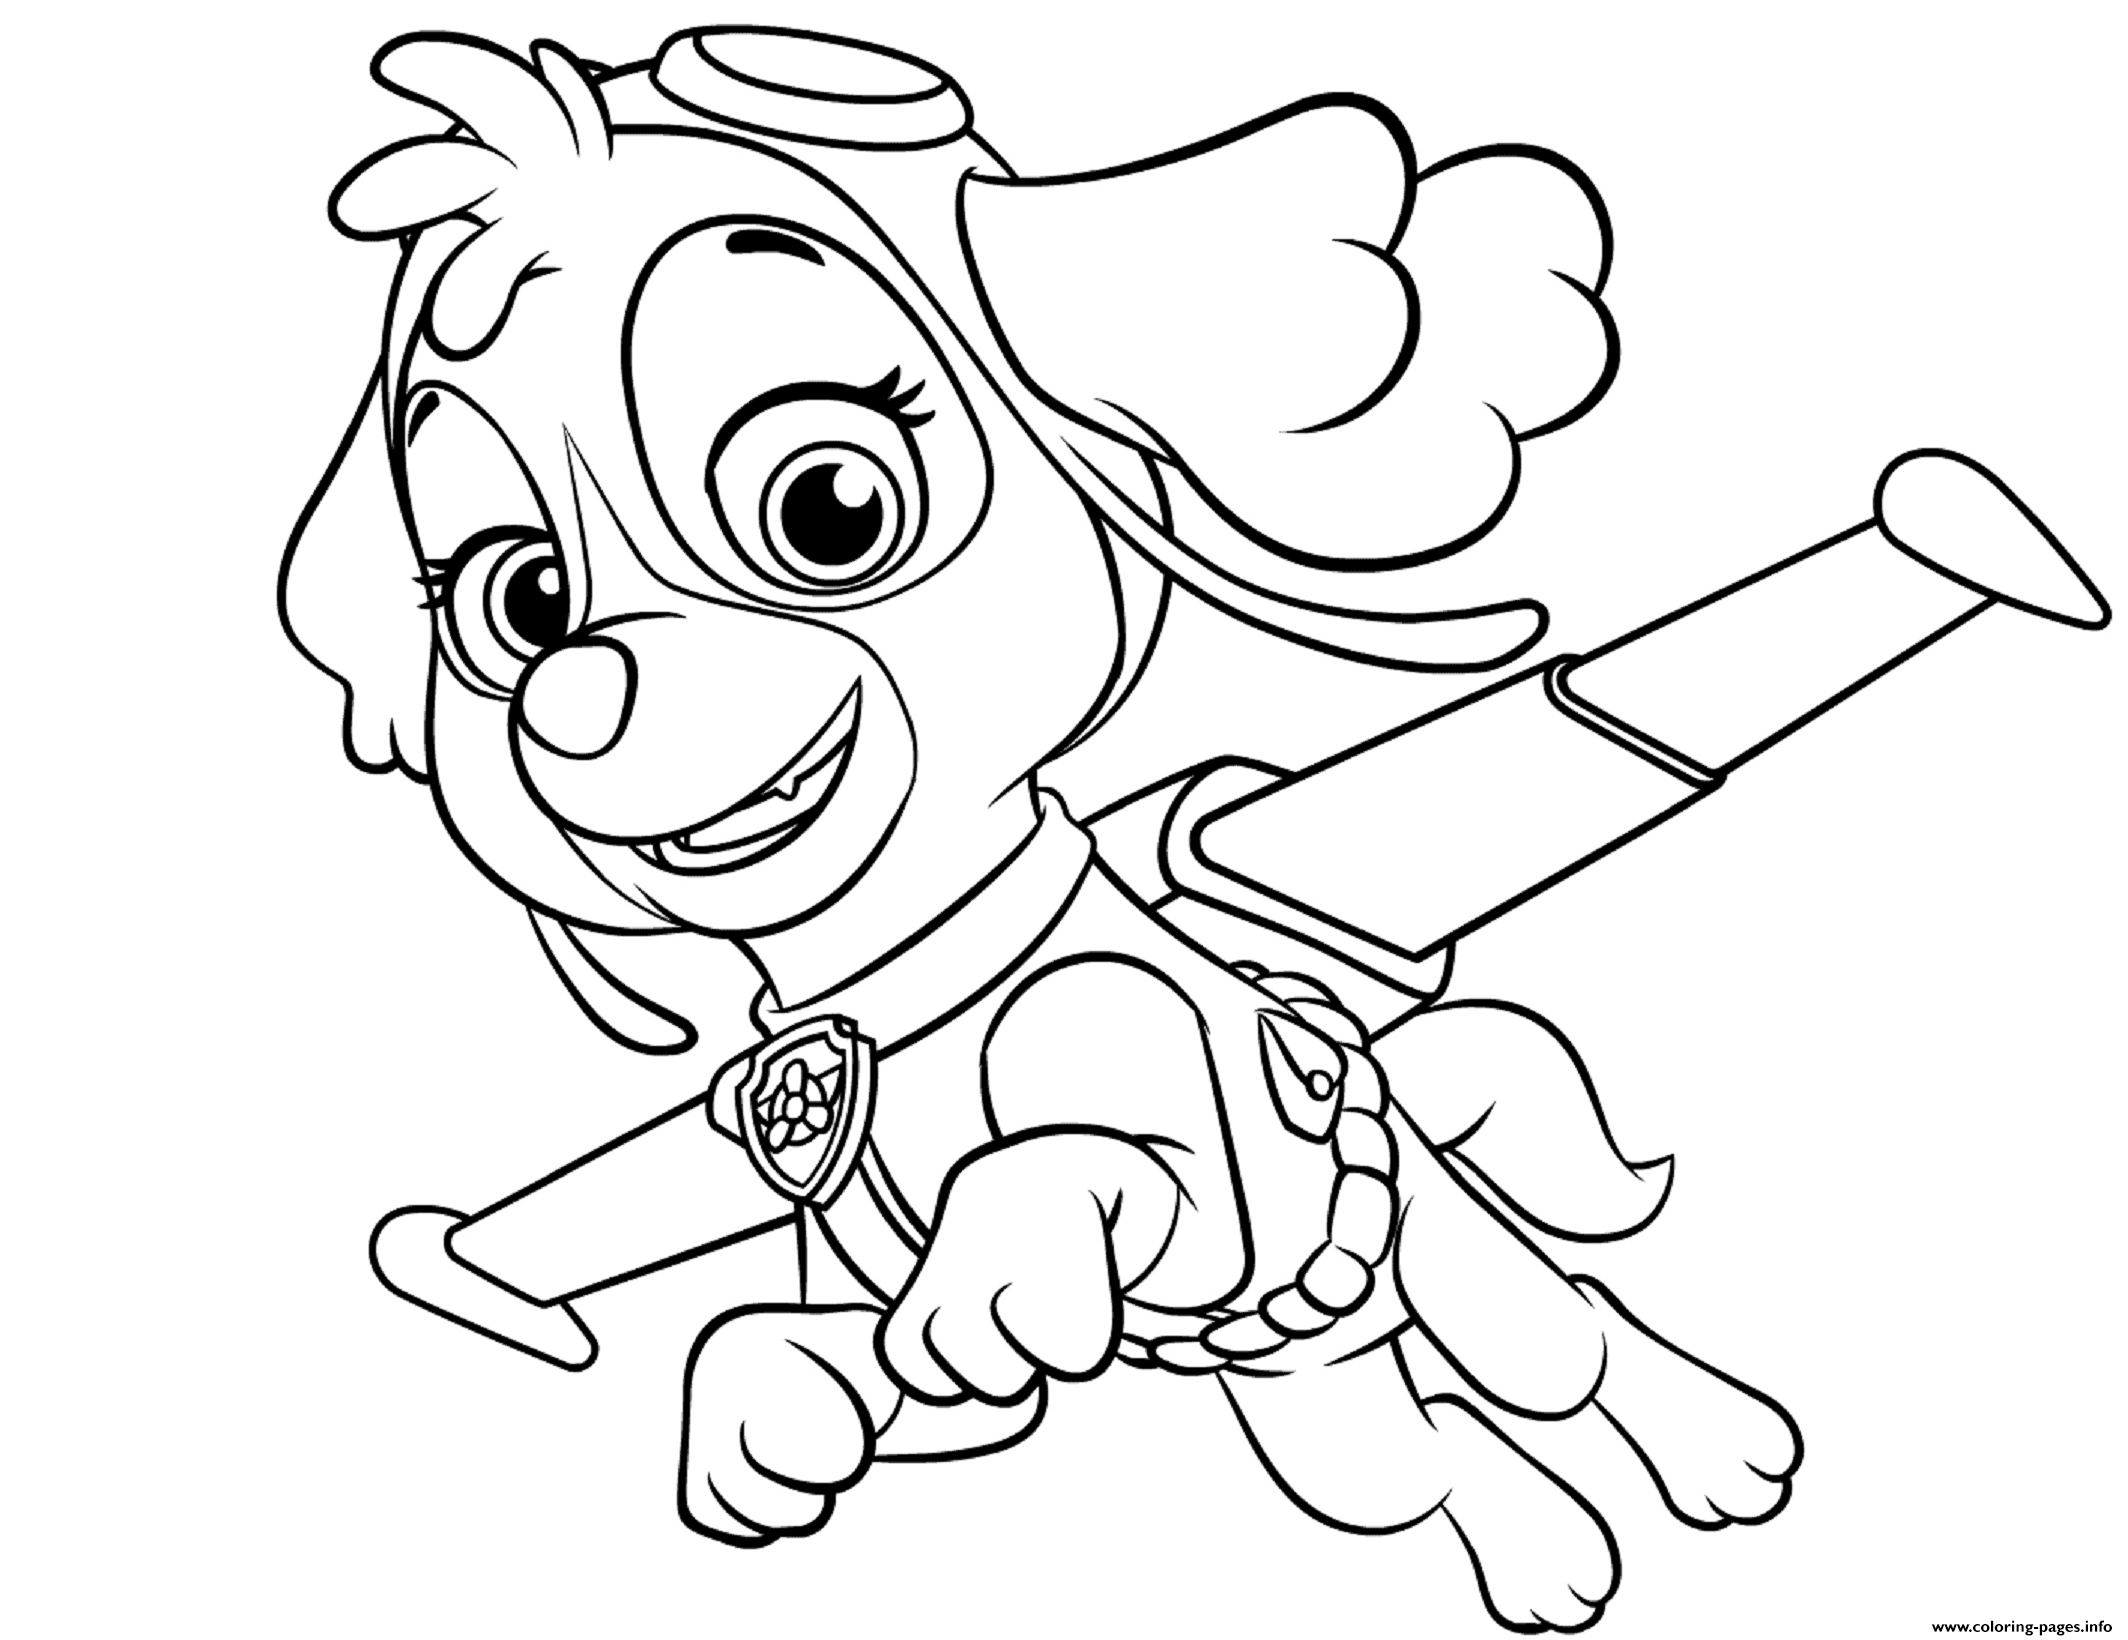 paw patrol pictures to print paw patrol coloring pages printable free coloring sheets pictures patrol paw print to